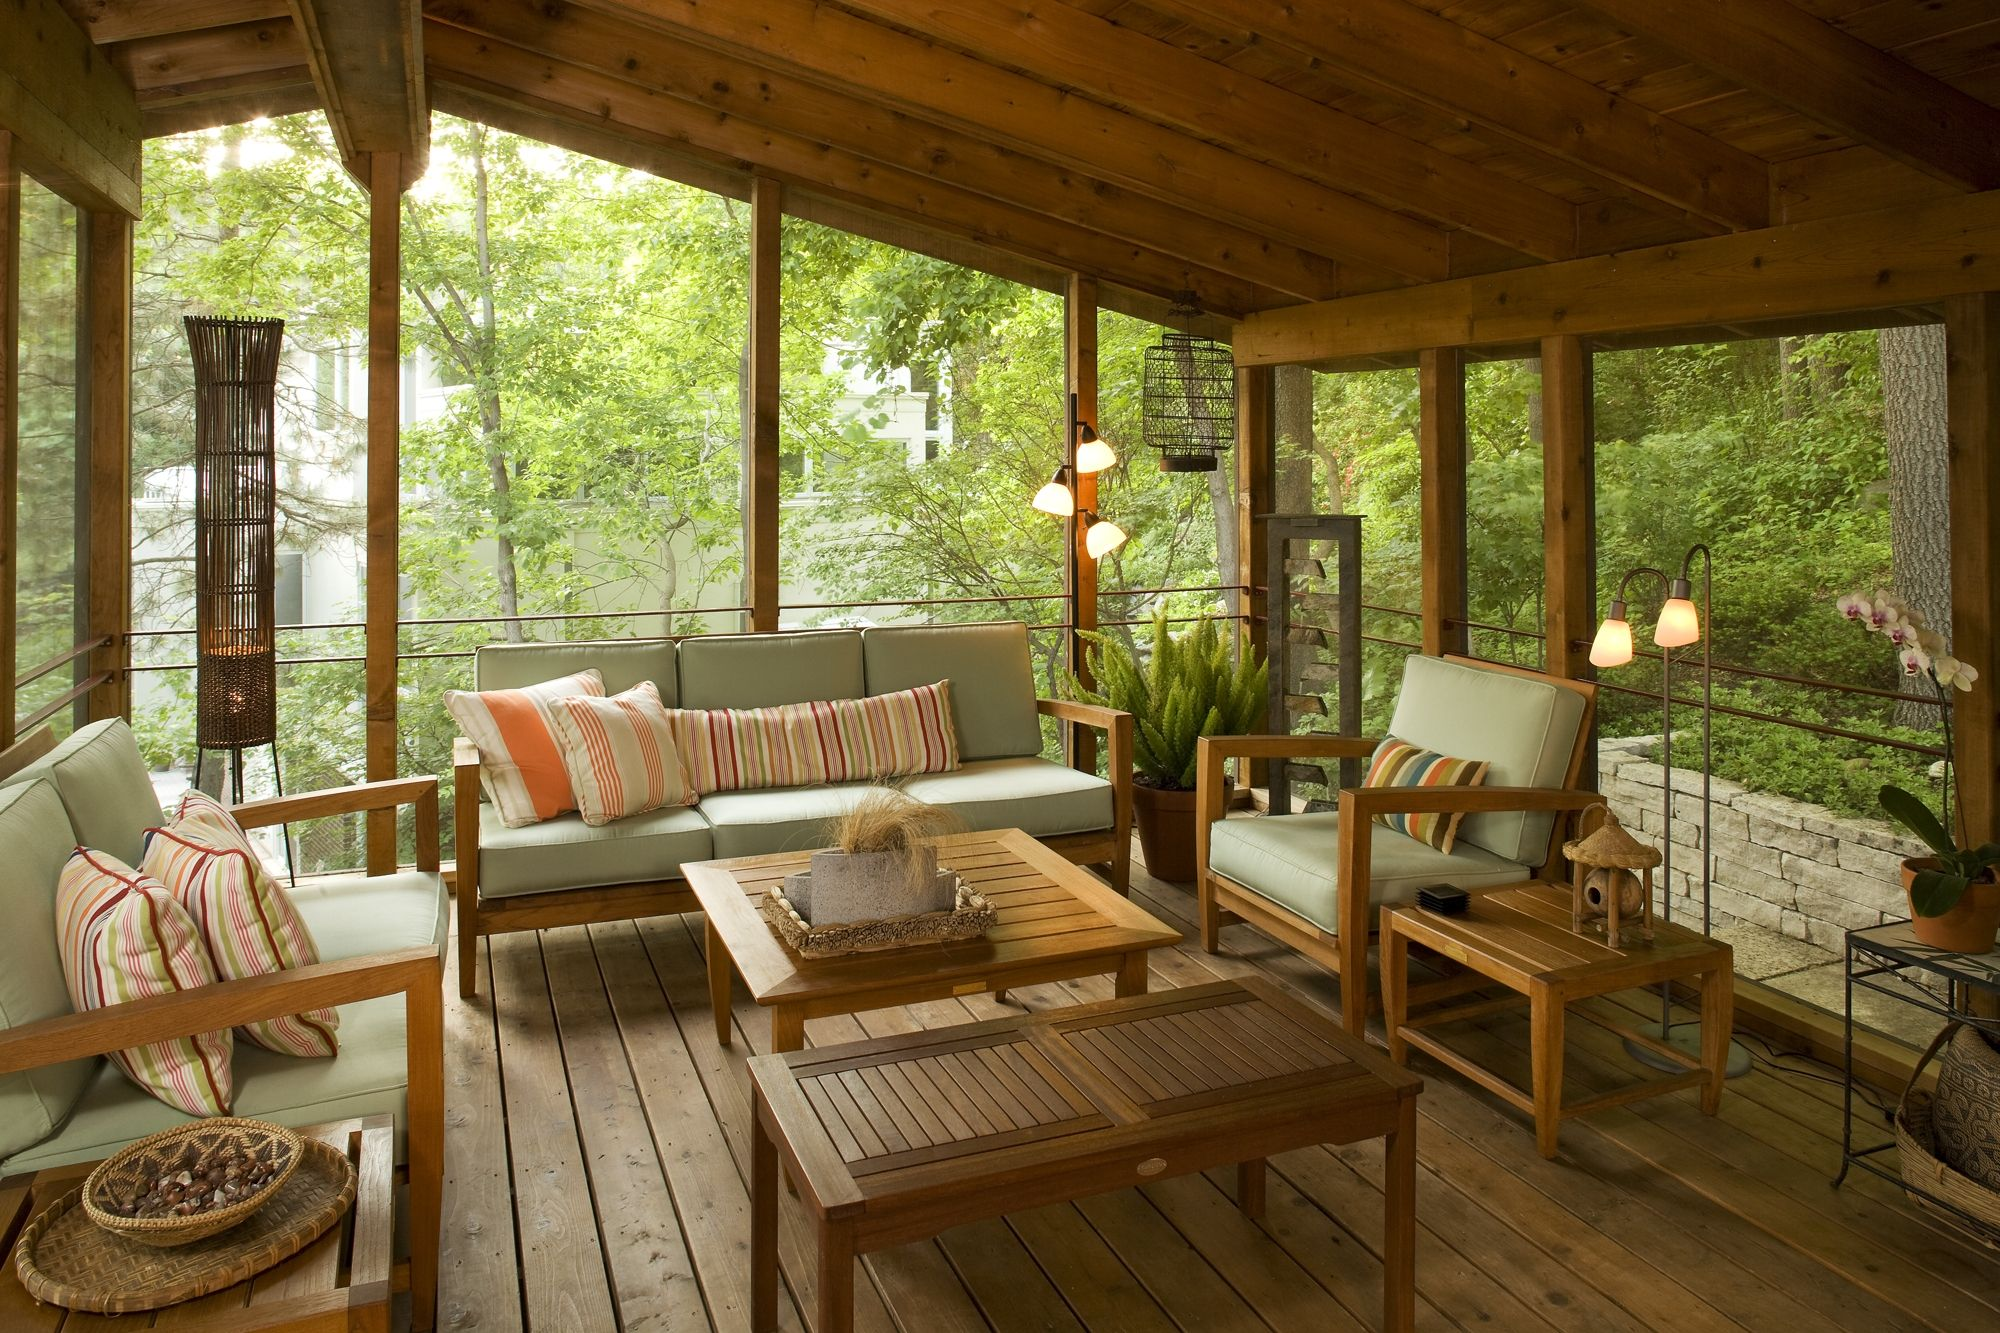 Phases of the room | Back porch designs, House with porch ... on Back Deck Ideas For Ranch Style Homes  id=14555